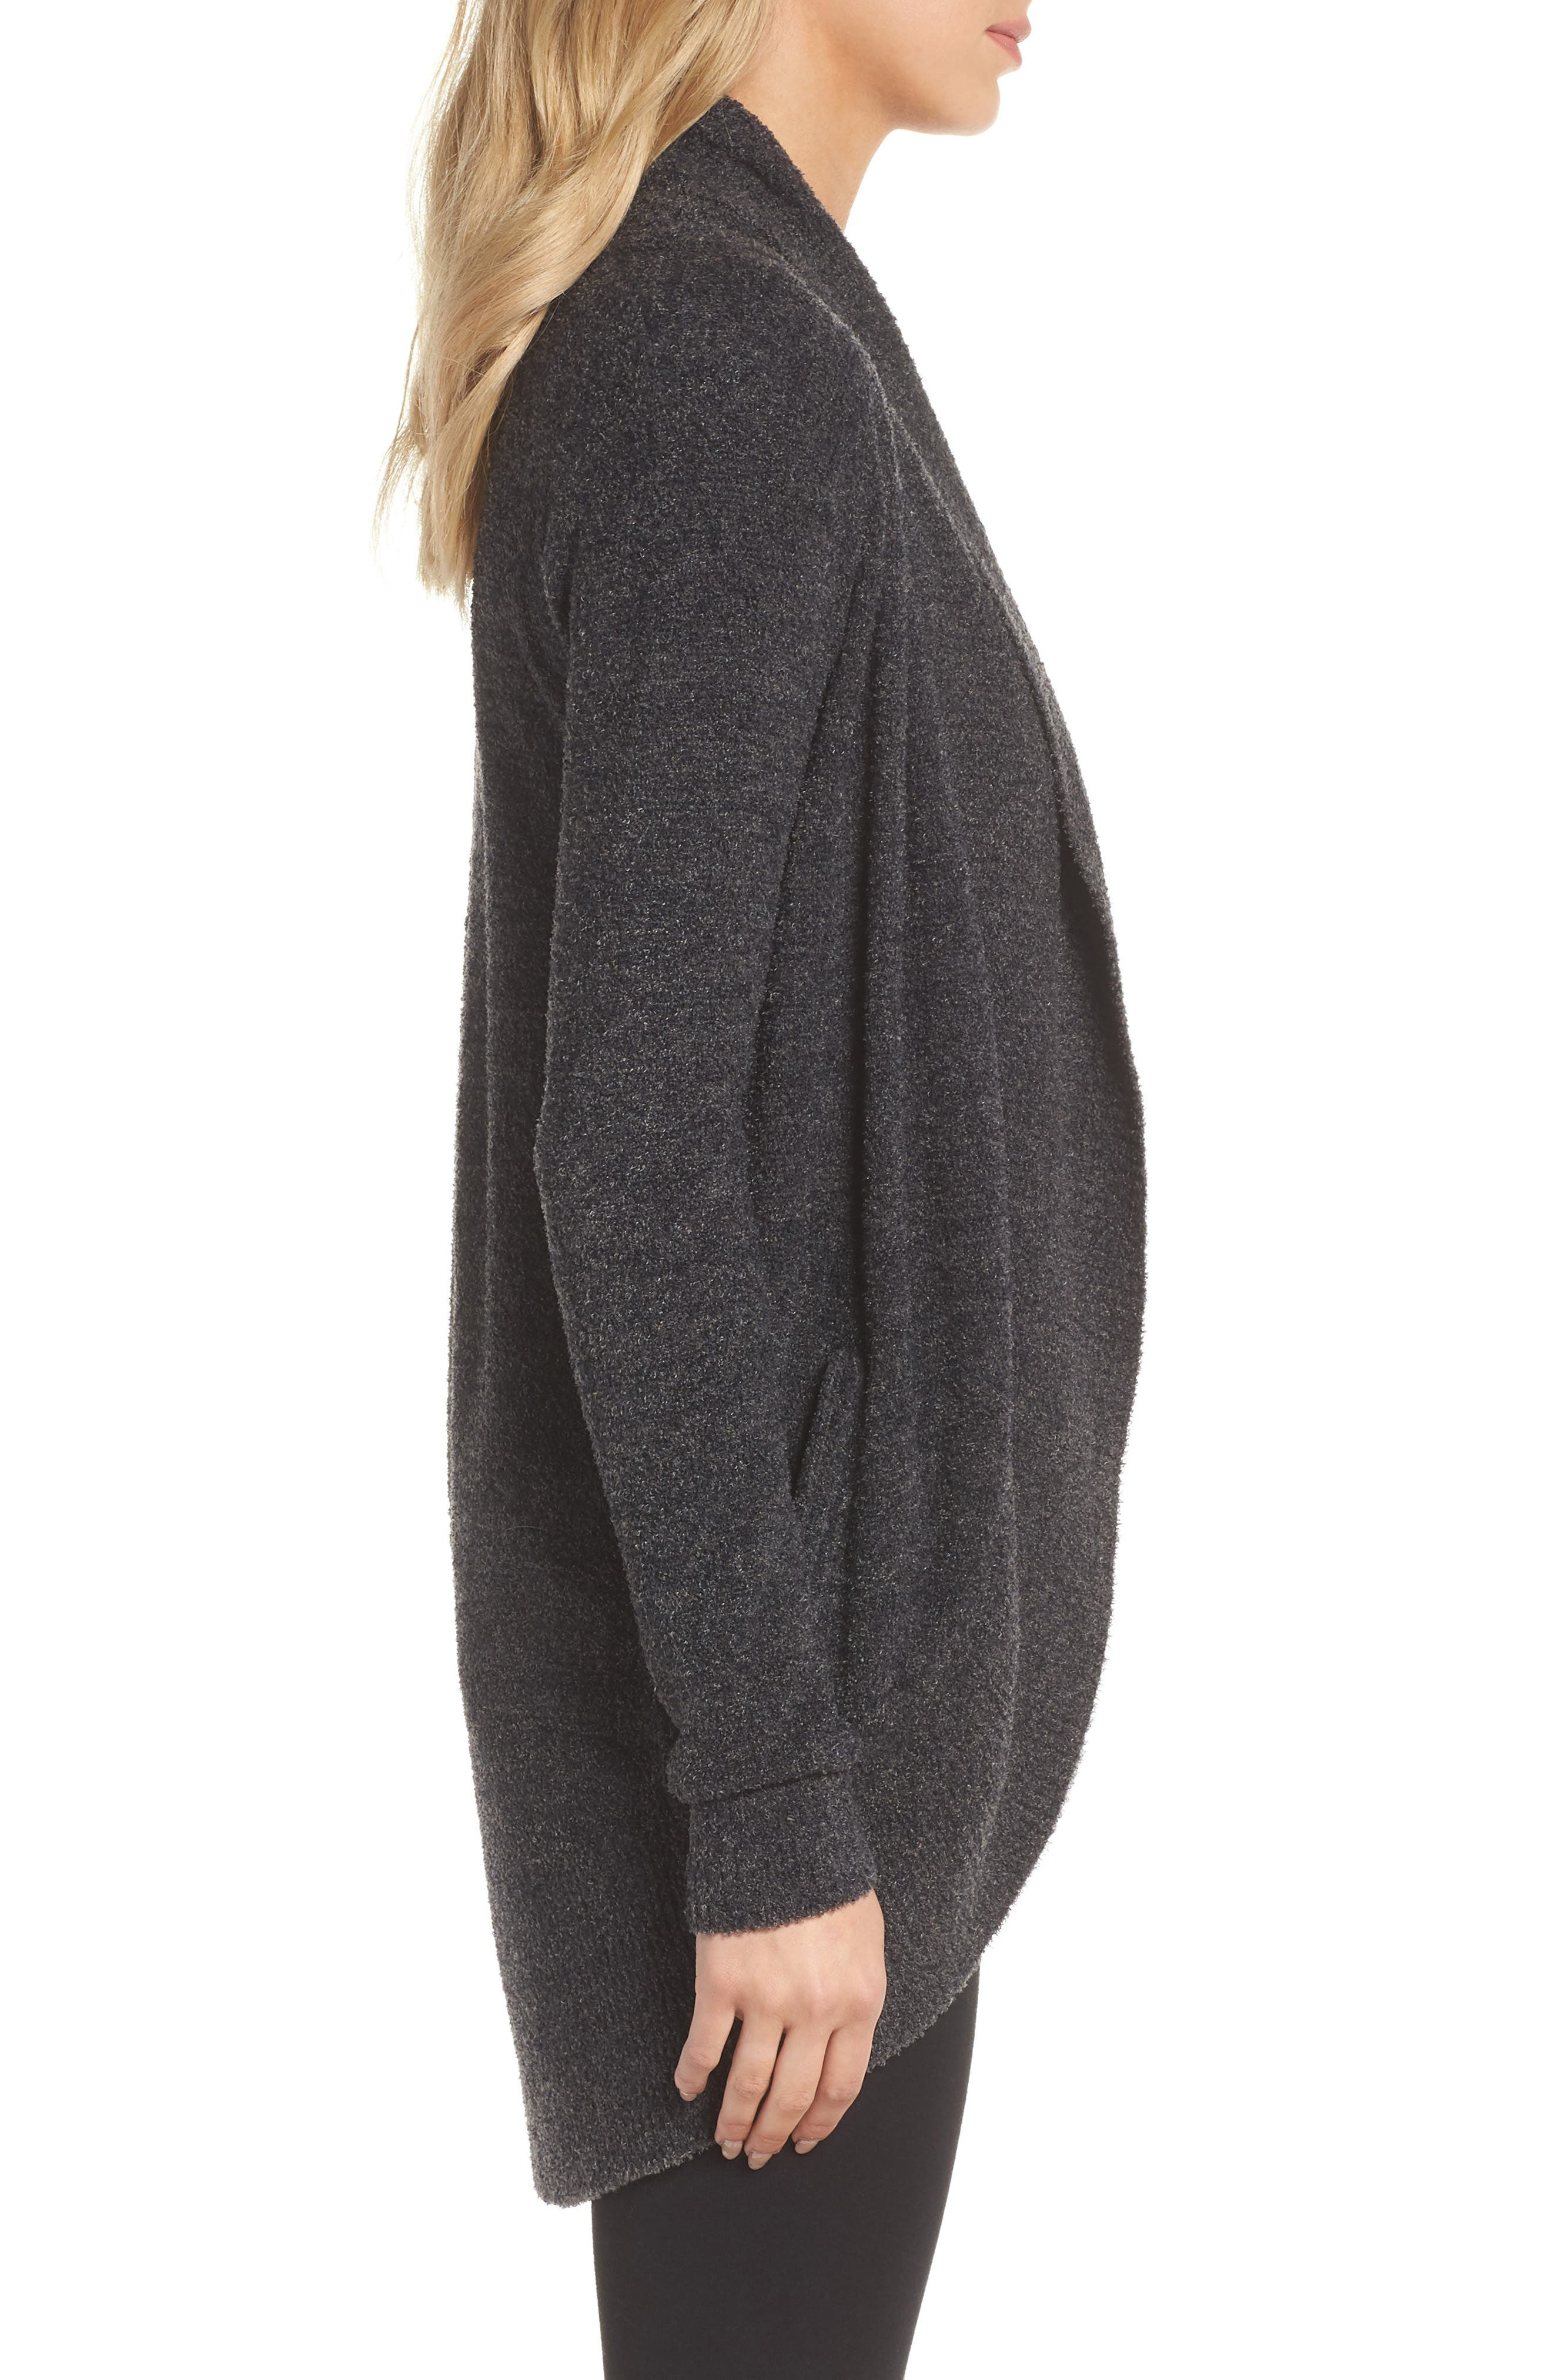 CozyChic Lite<sup>®</sup> Circle Cardigan,                             Alternate thumbnail 3, color,                             Carbon/ Black Heather